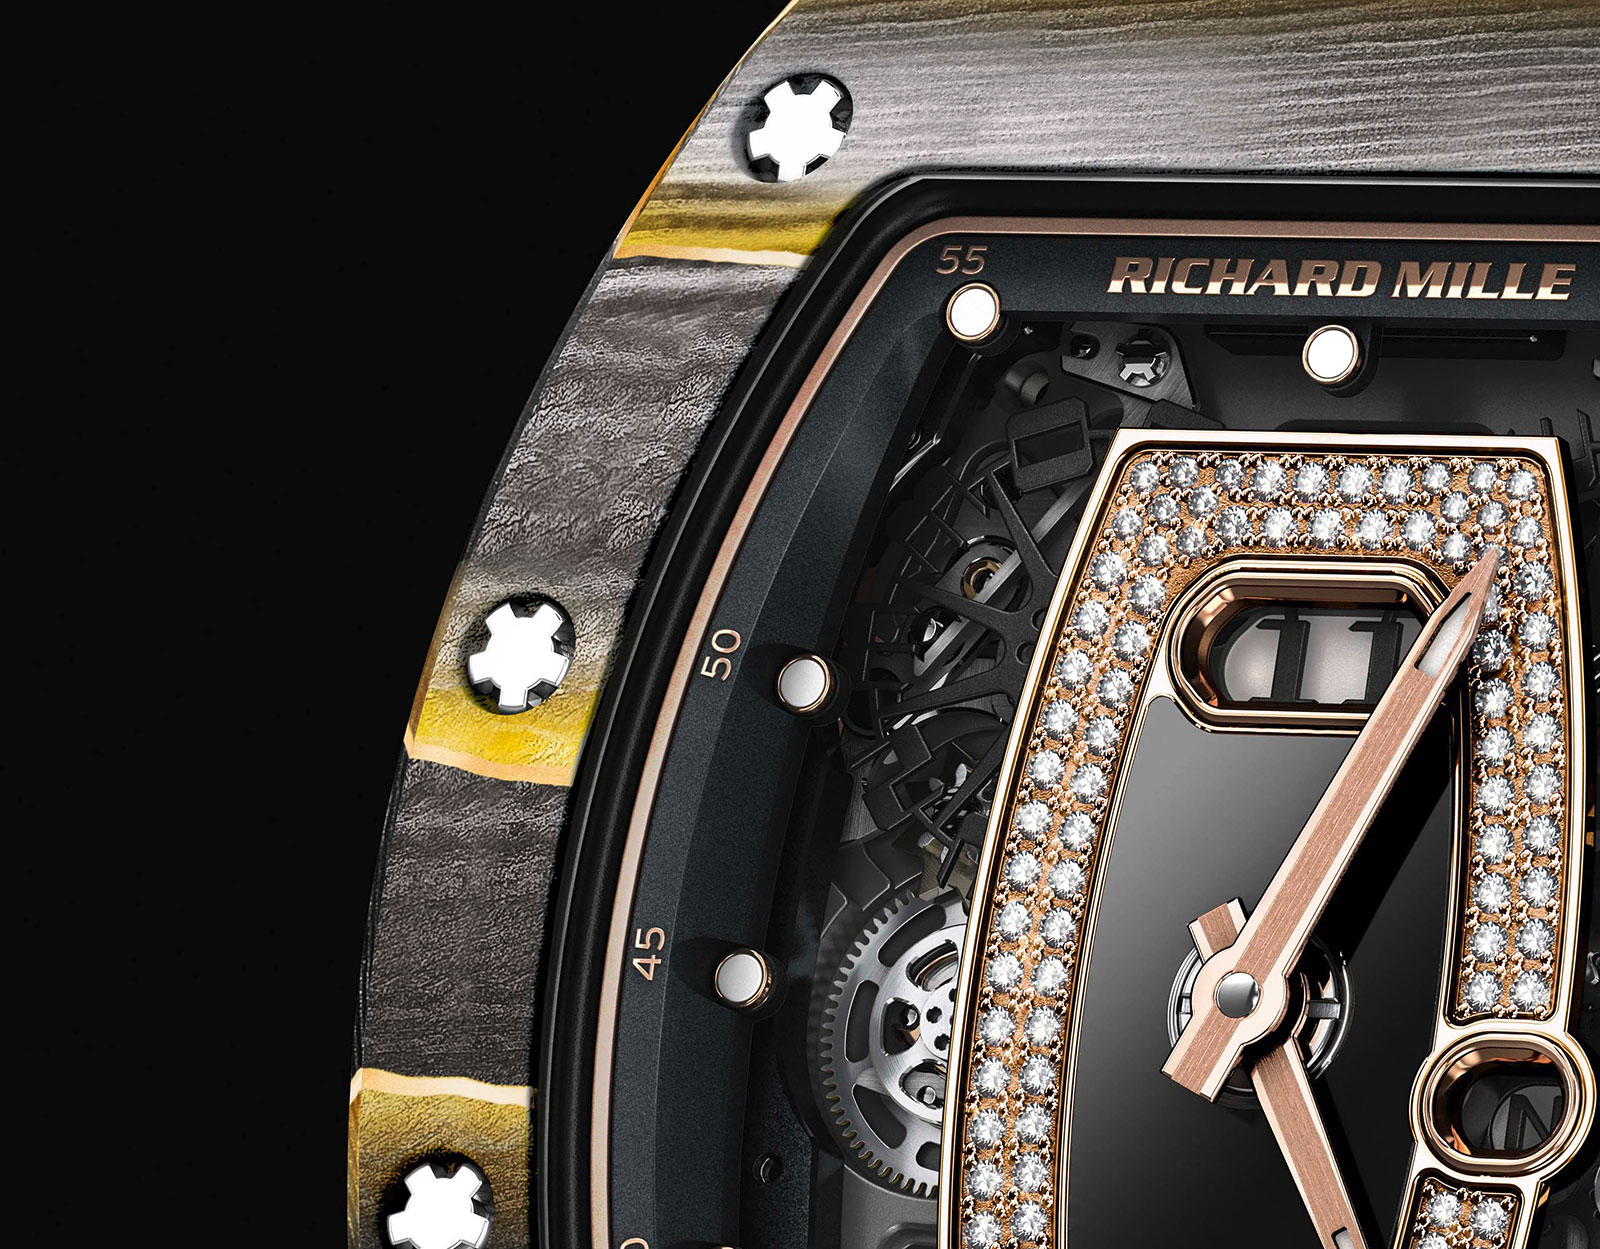 Richard-Mille-RM-037-Gold-NTPT-carbon-